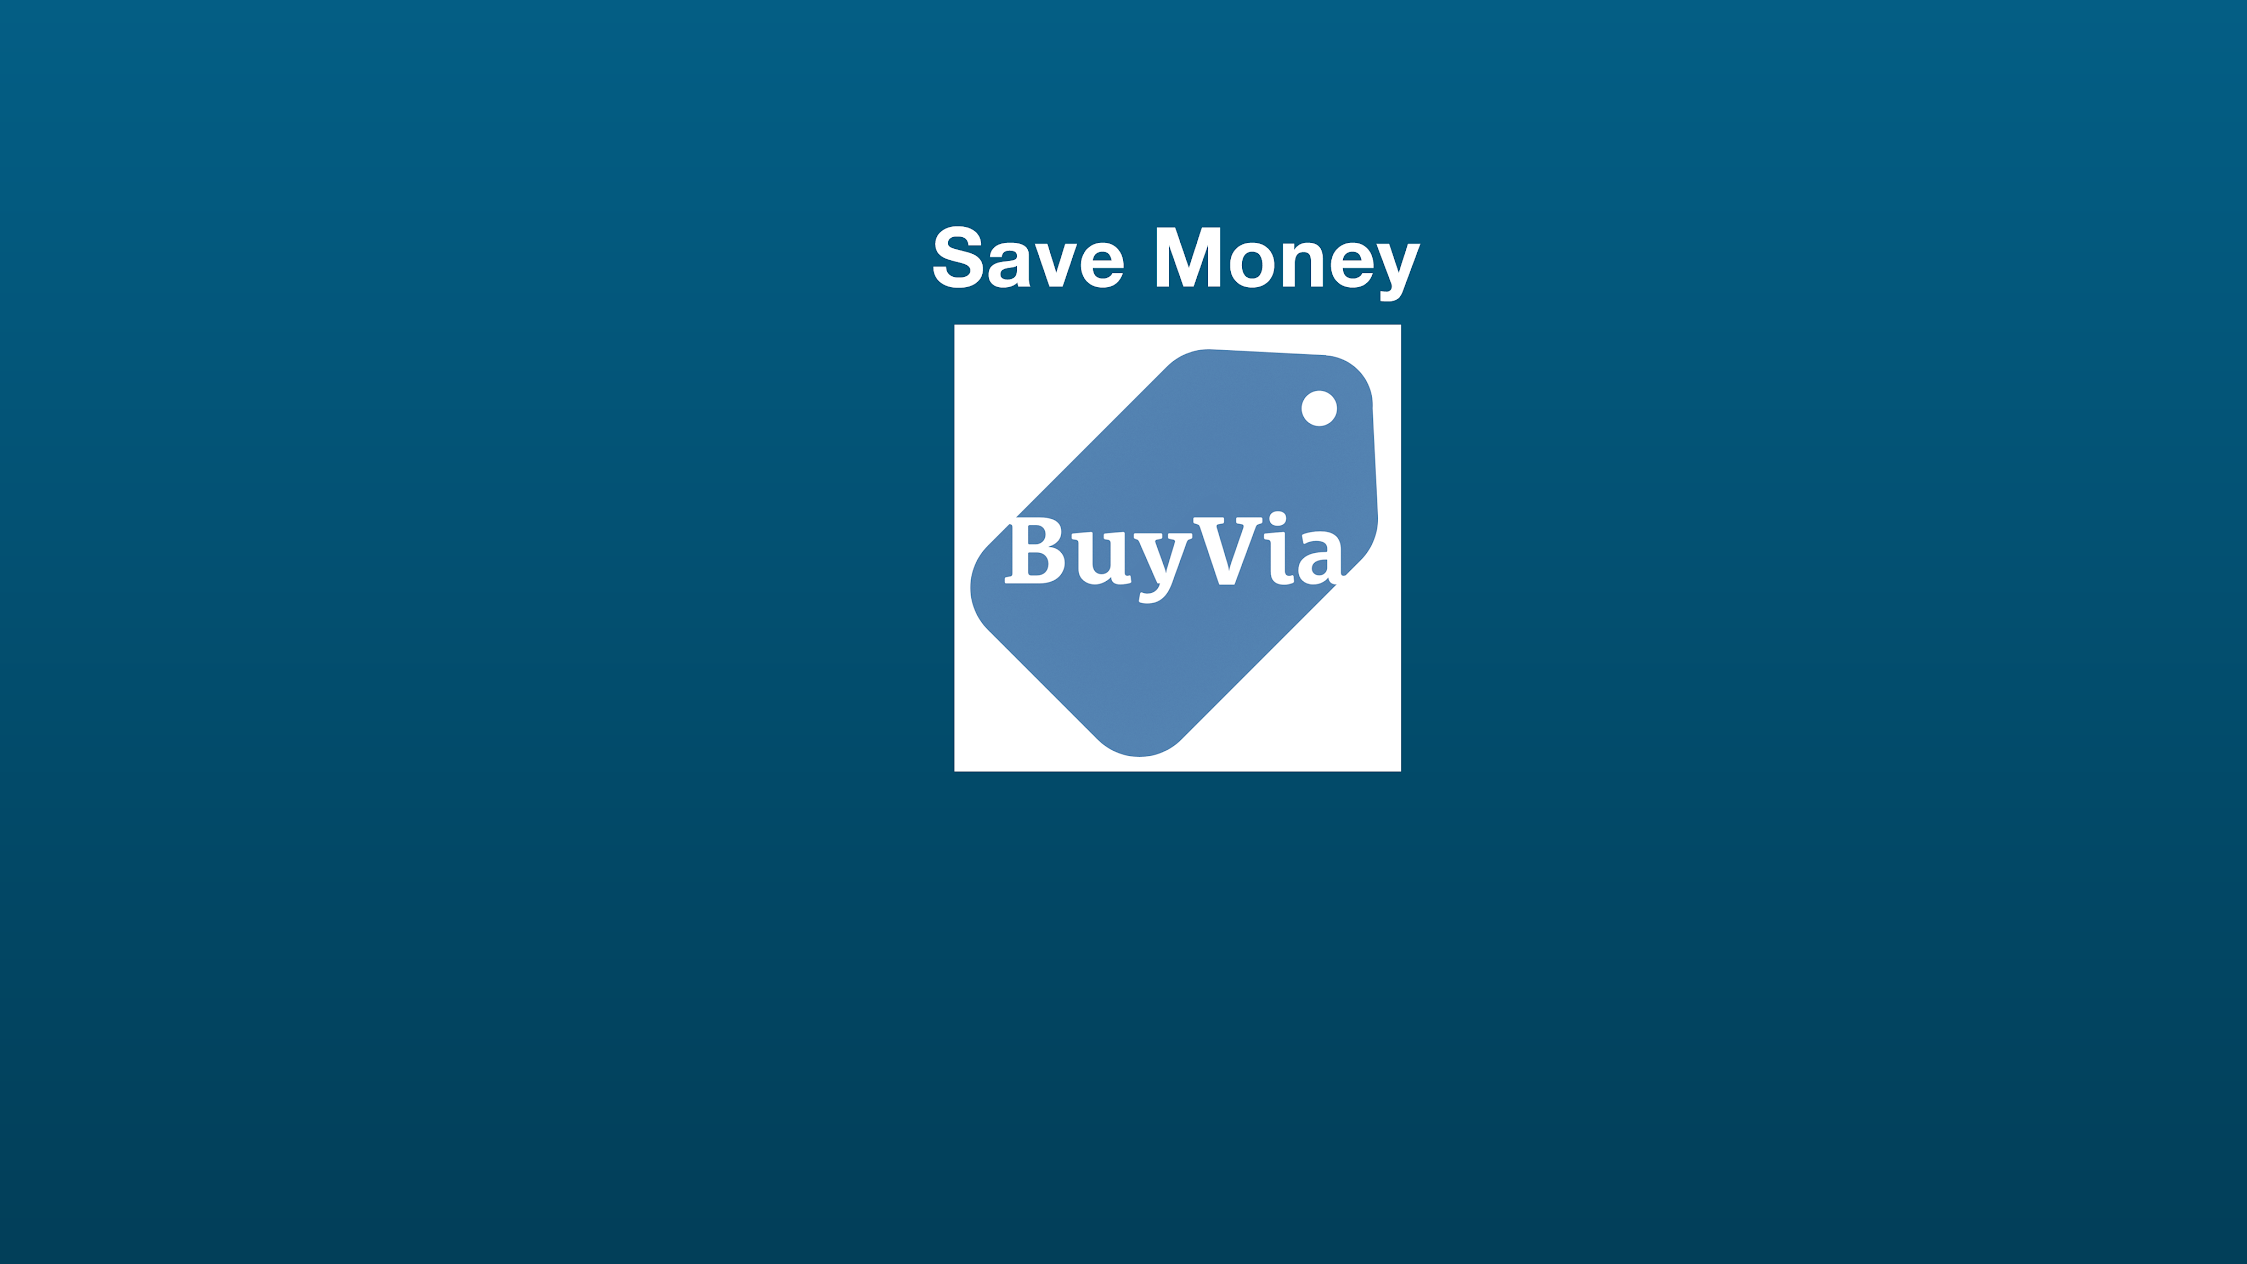 Best Deals App - BuyVia